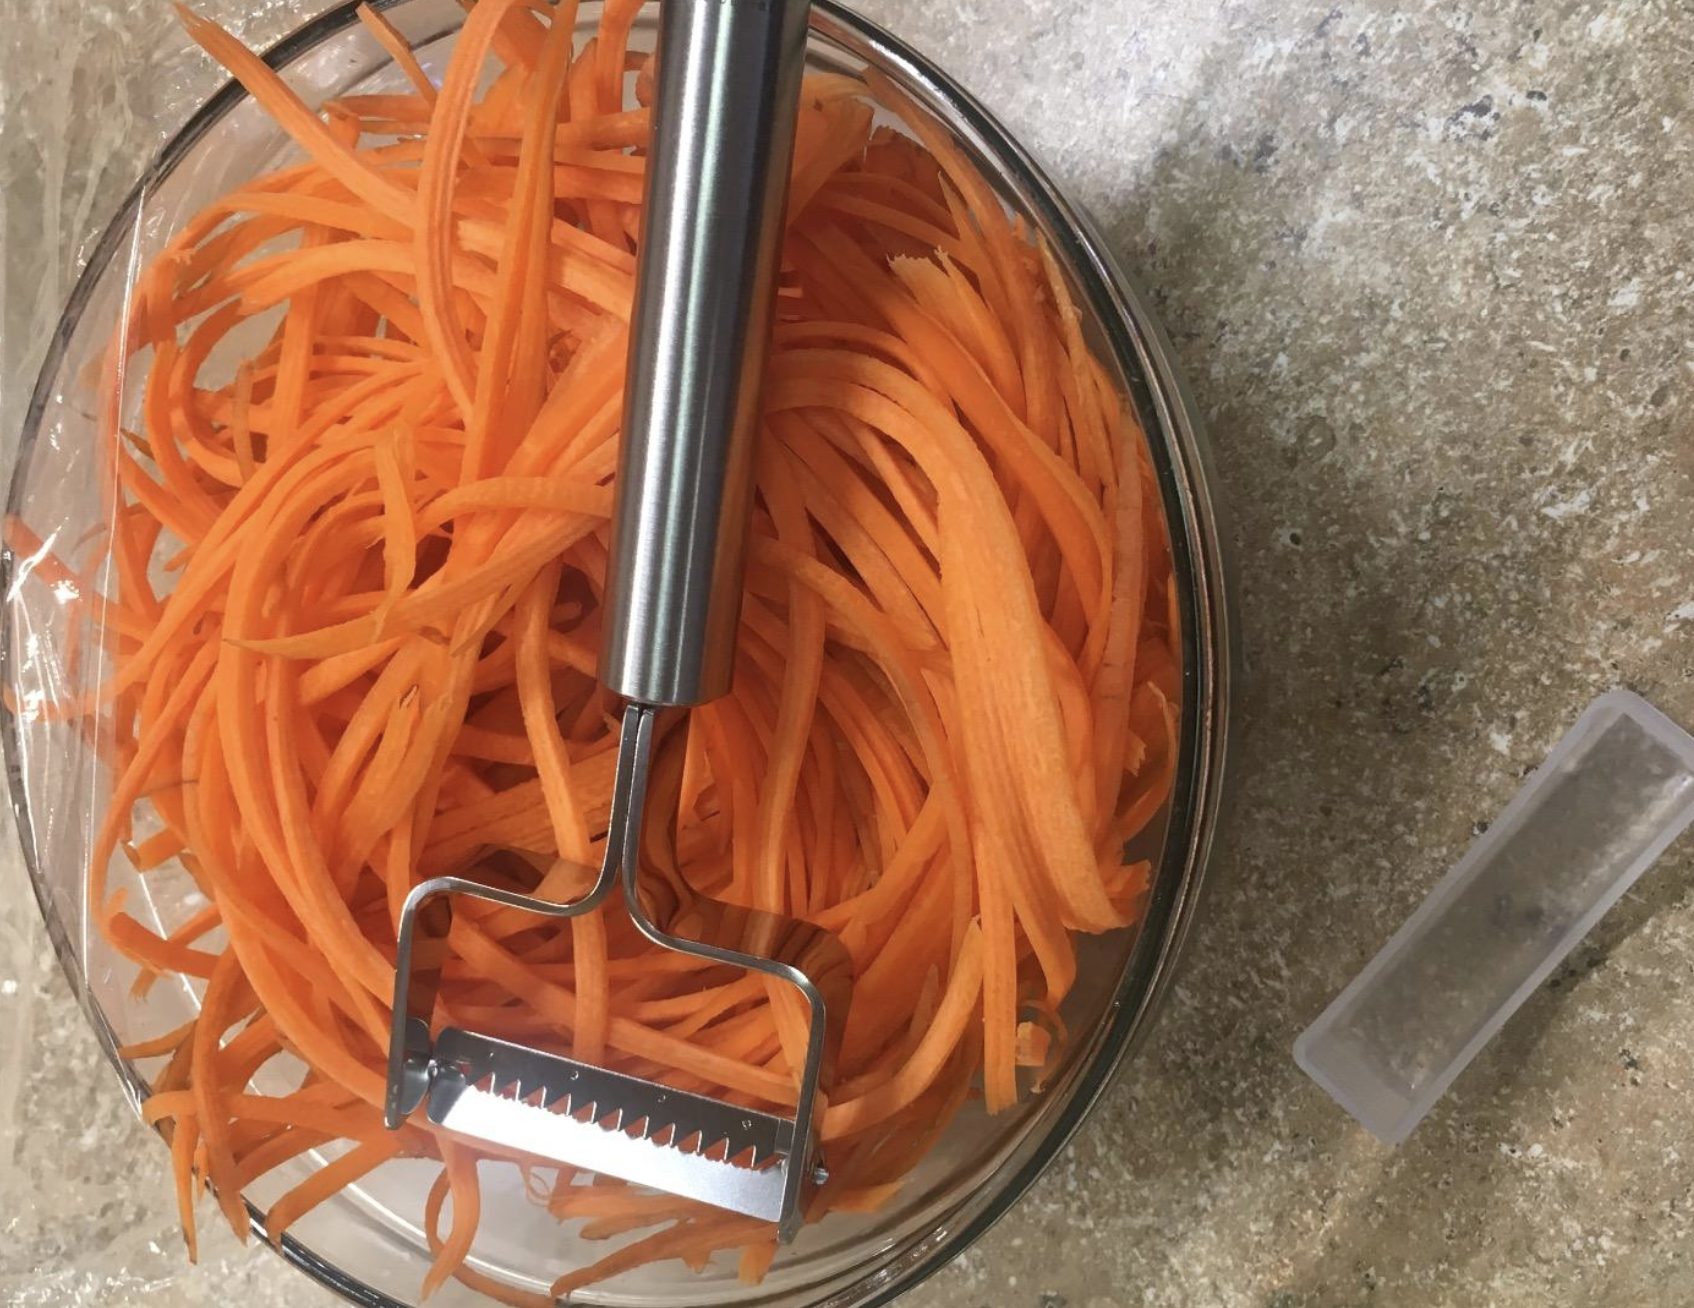 A reviewer photo of the peeler and a bowl of shredded carrots